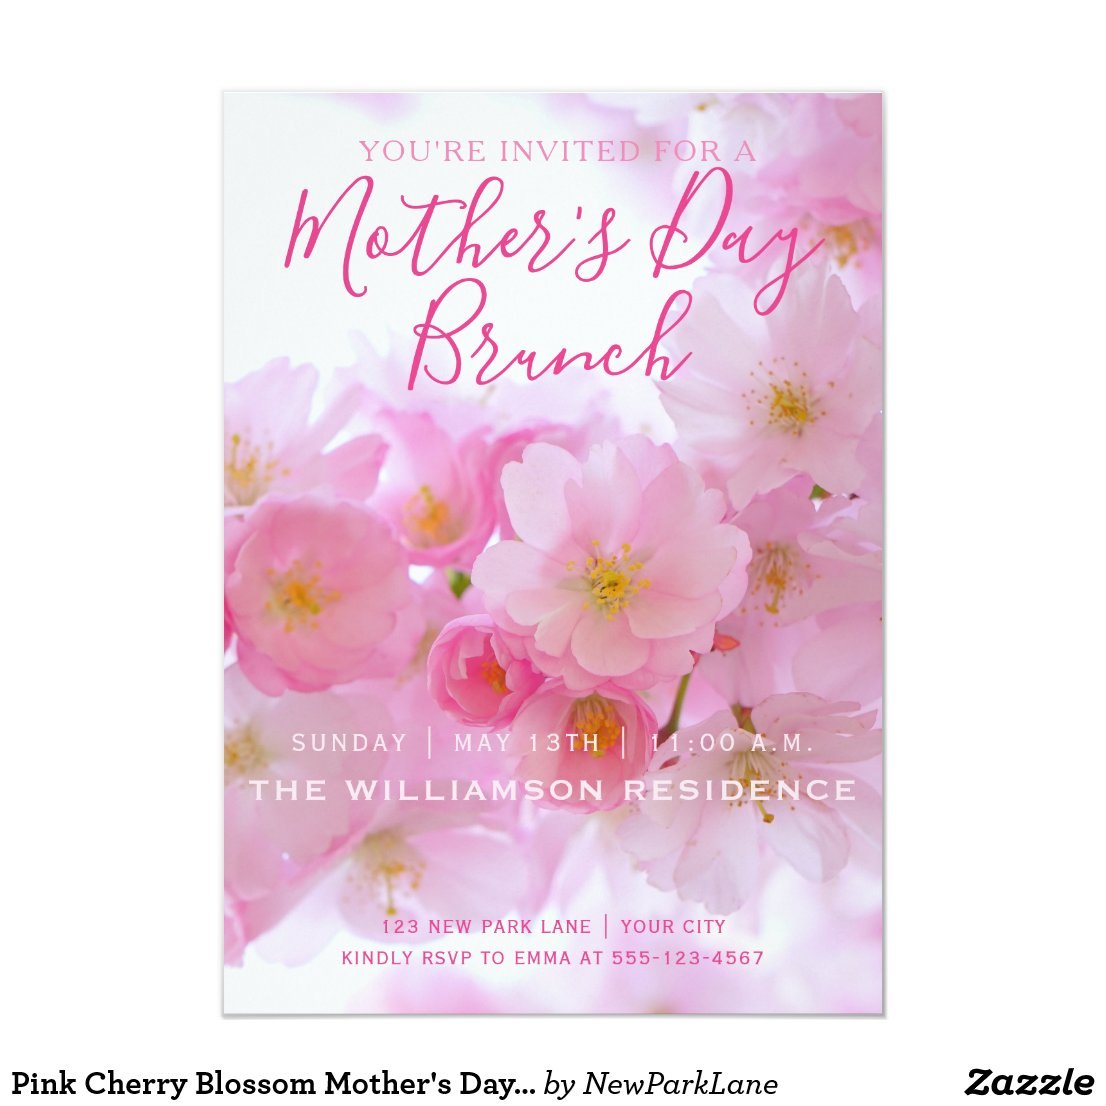 Pink Cherry Blossom Mother's Day Brunch Invitation